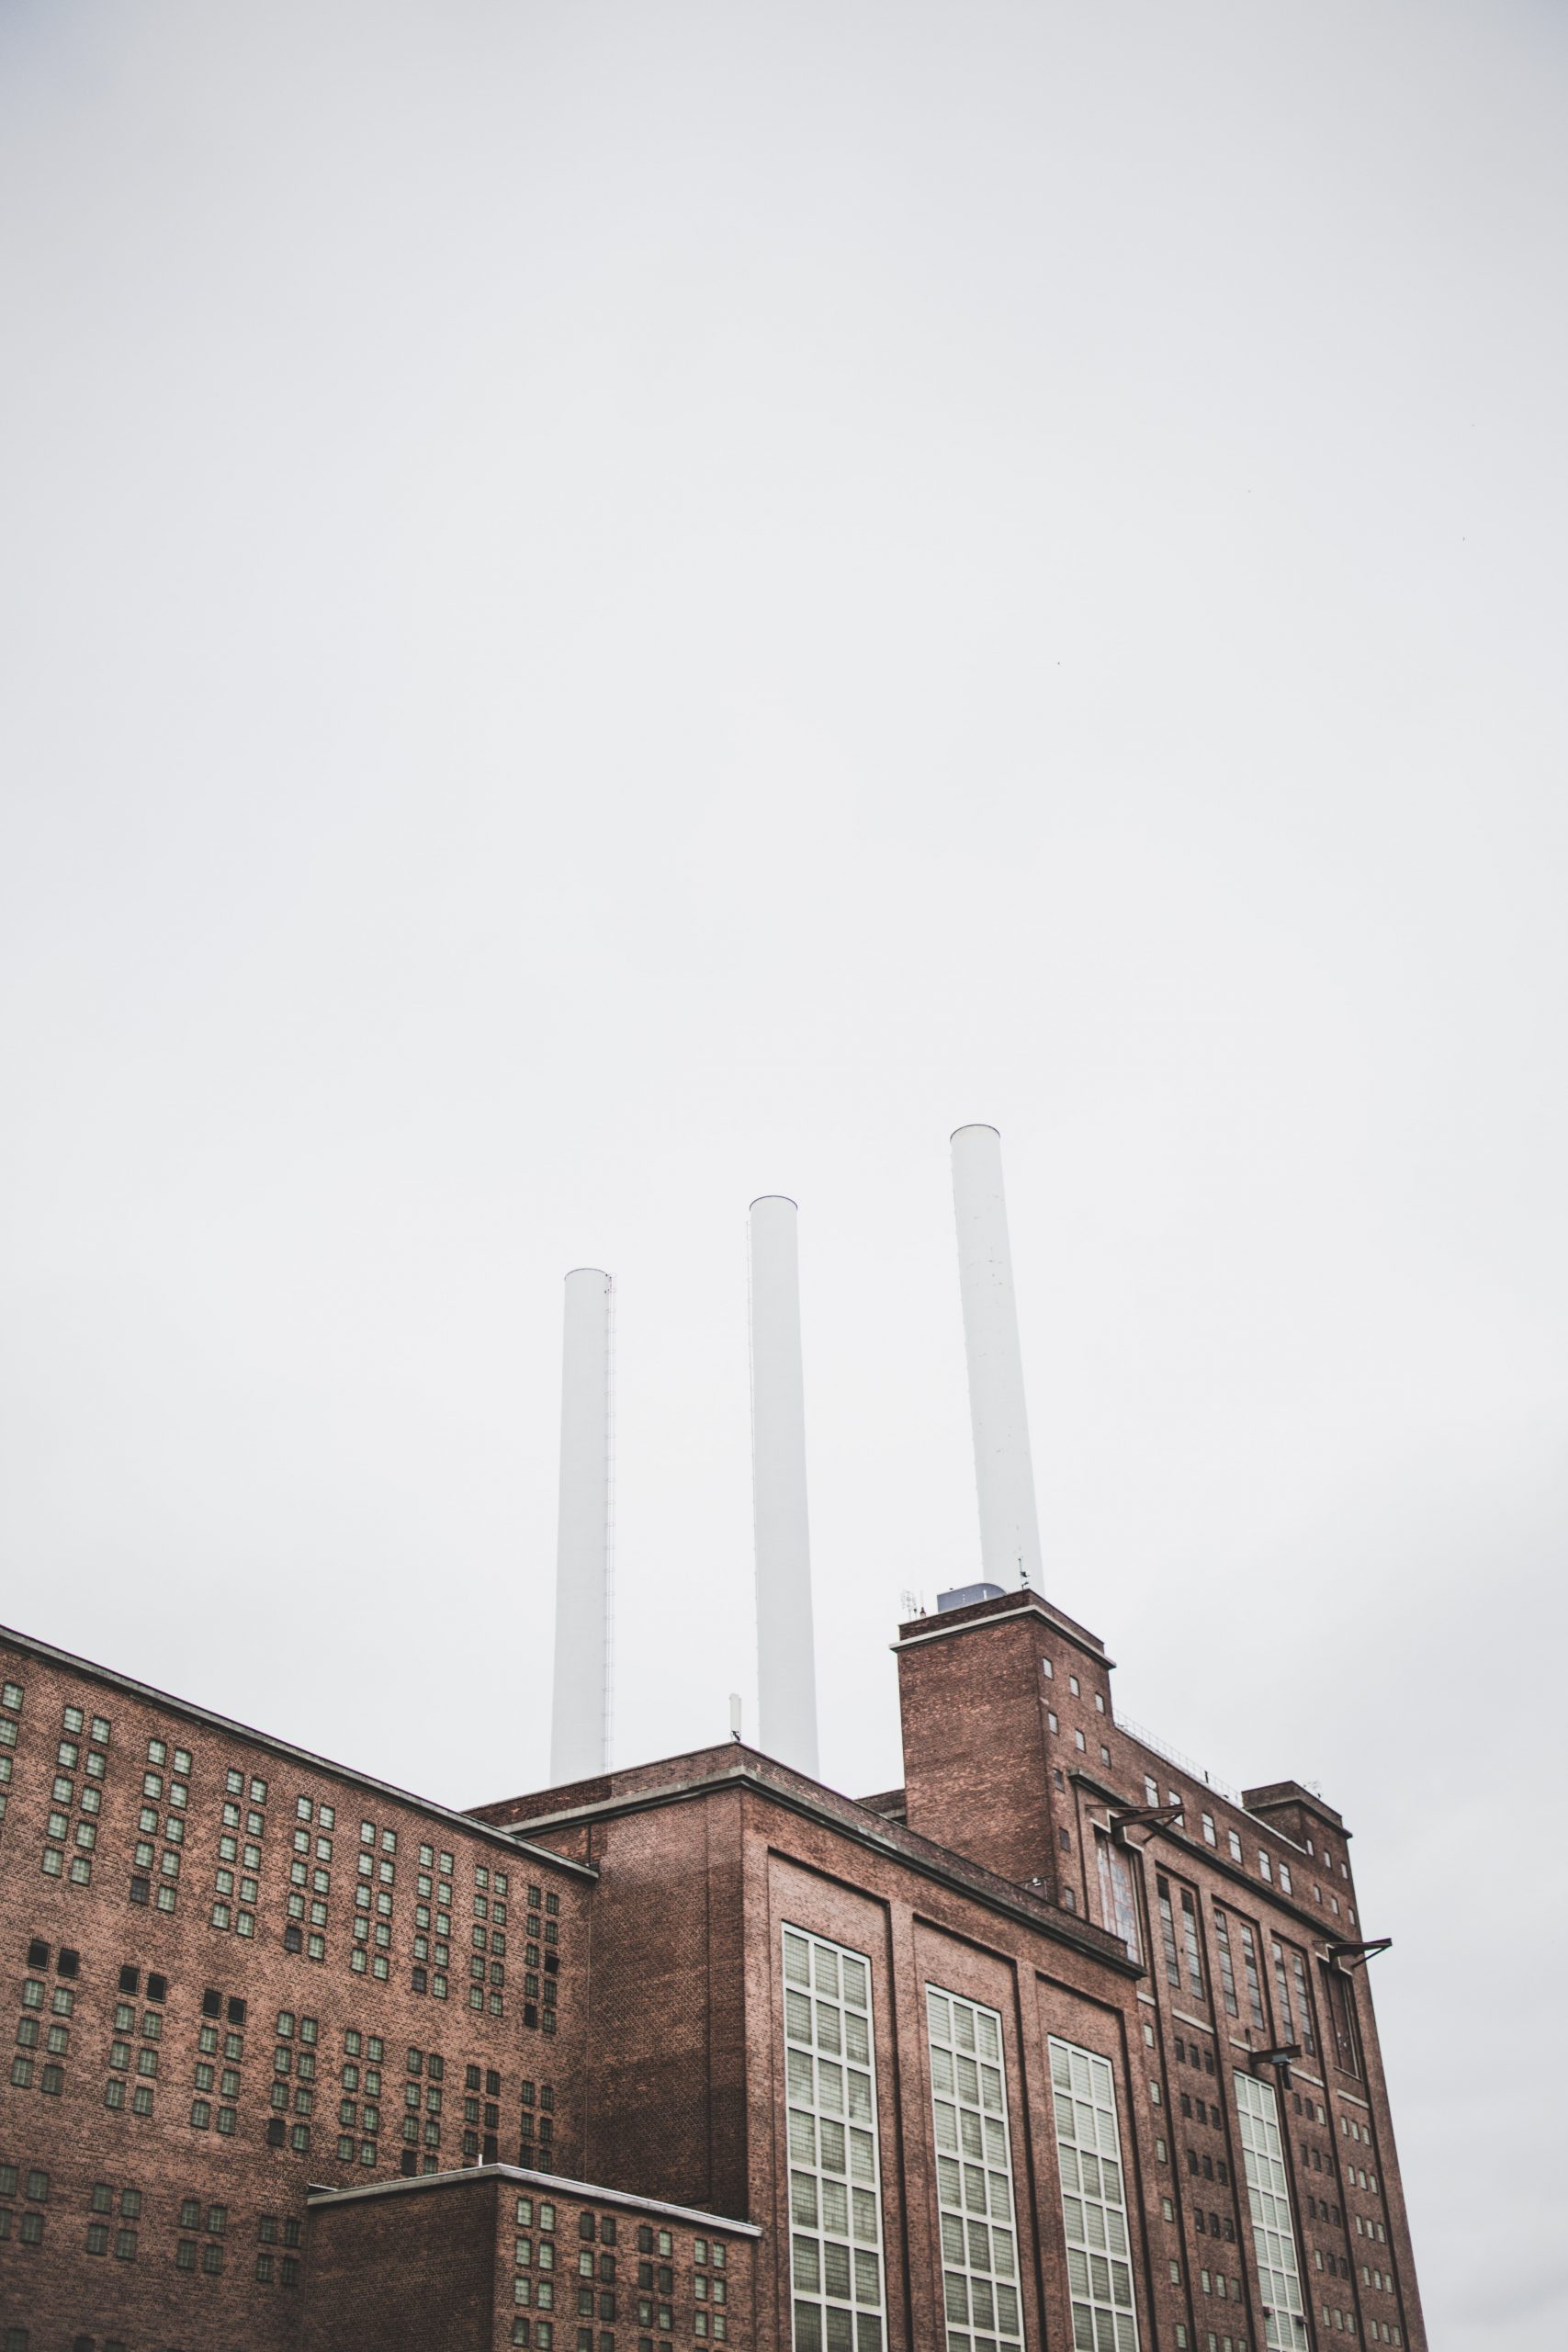 brown factory under clear sky